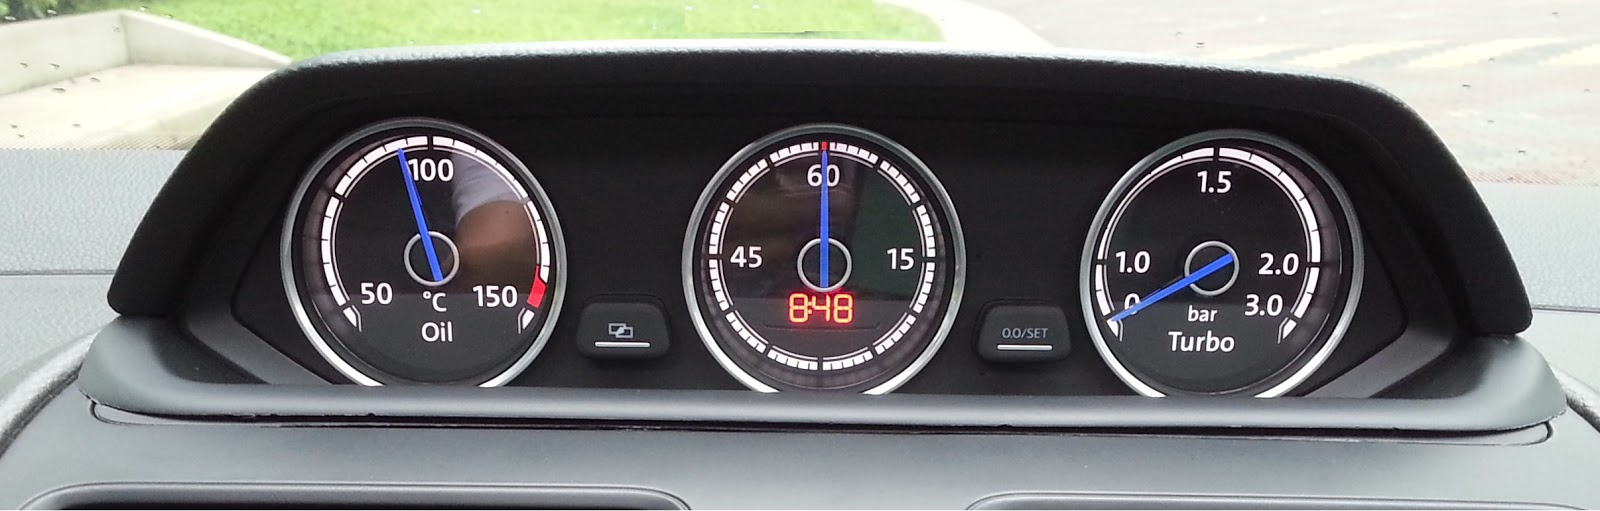 cbx rns accessories auxiliary cluster  golf mk gti